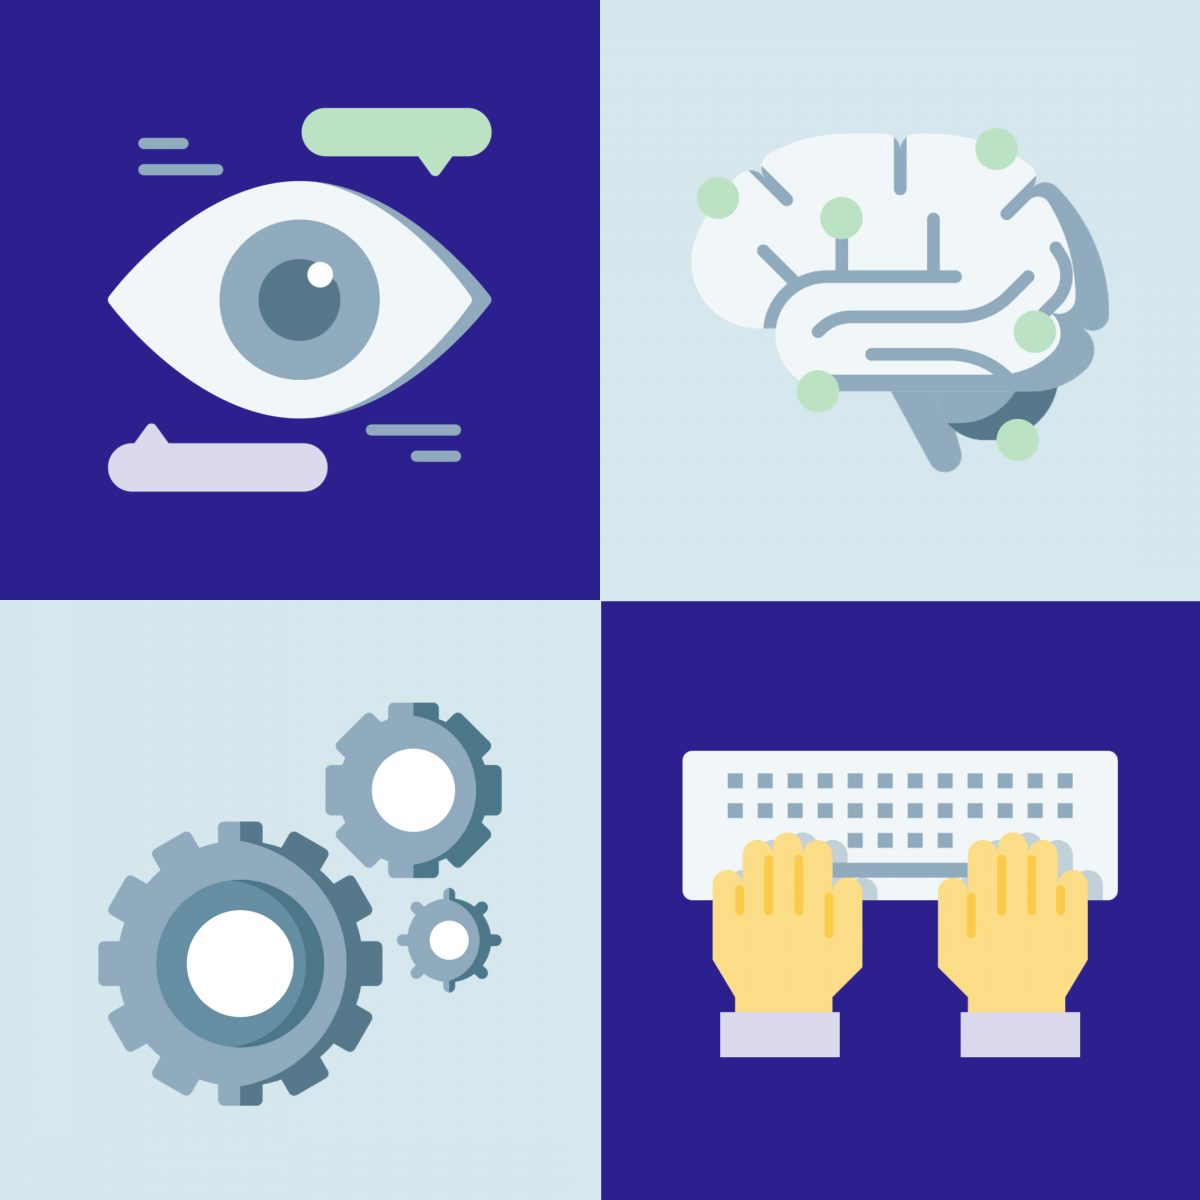 4 icons: an eye with text bubbles above and below it, a brain, a set of gears, and two hands using a keyboard.